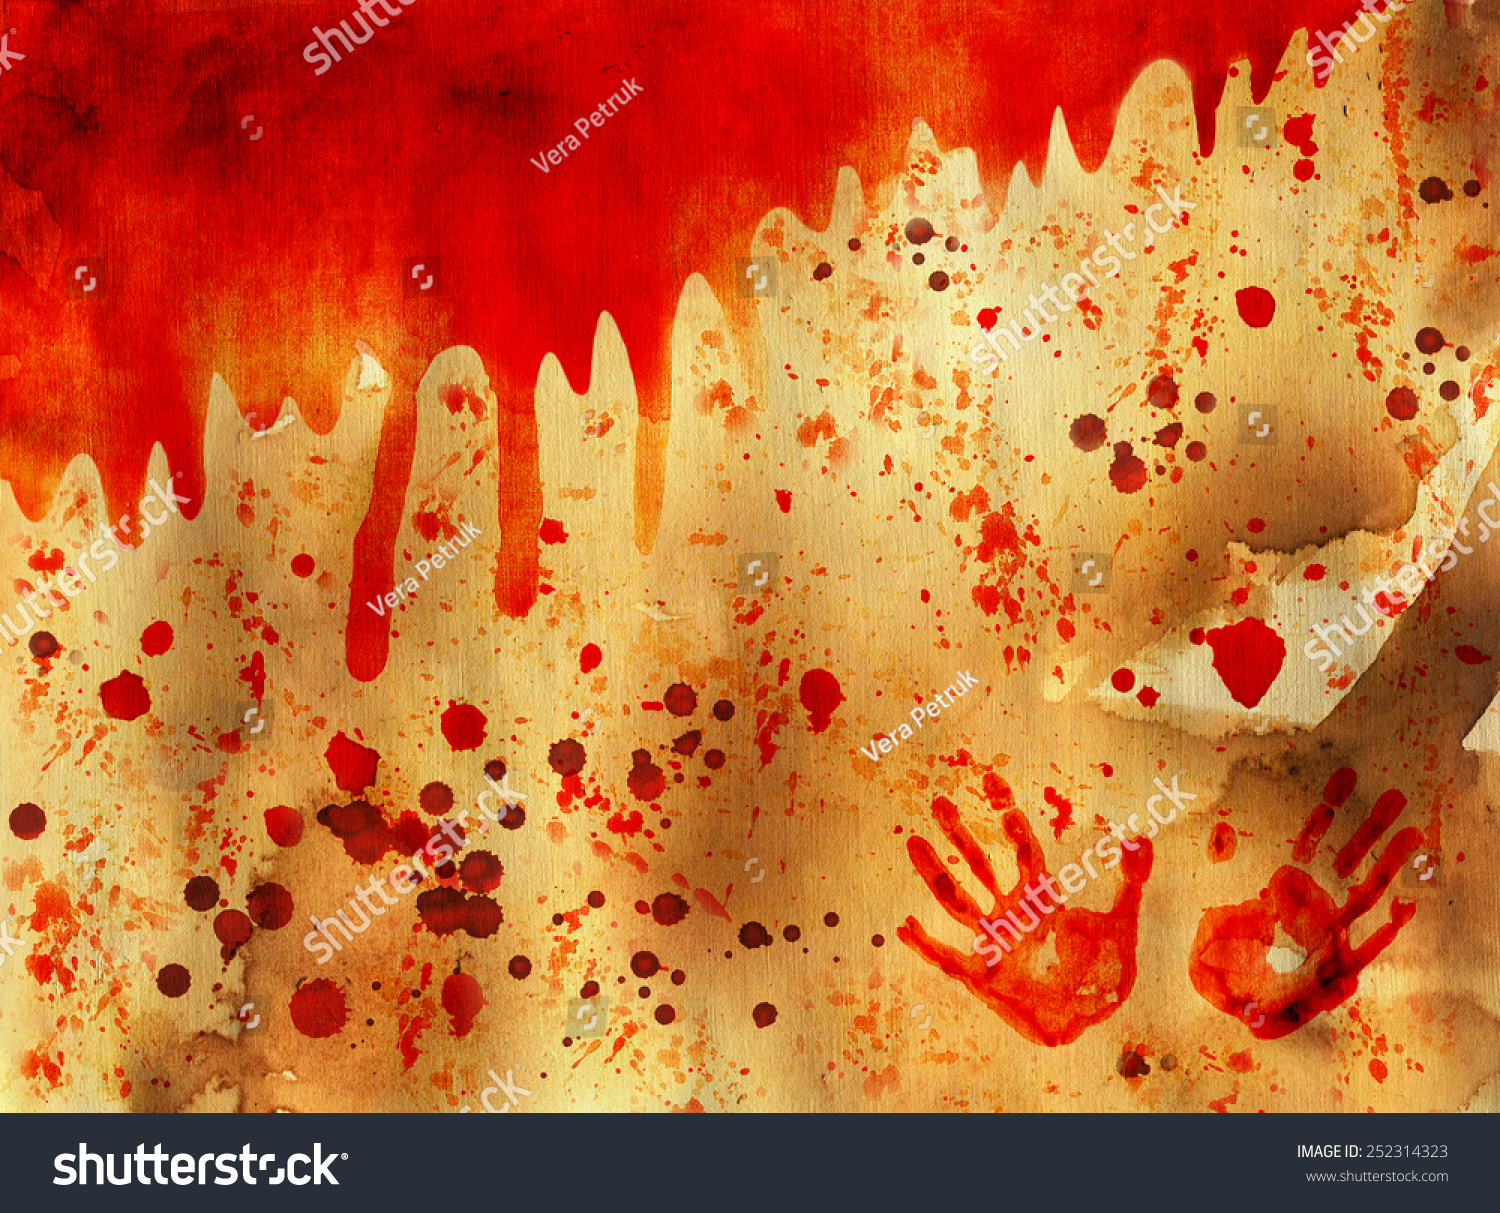 Bloody Halloween Background Shabby Paper Texture Stock Photo Edit Now 252314323